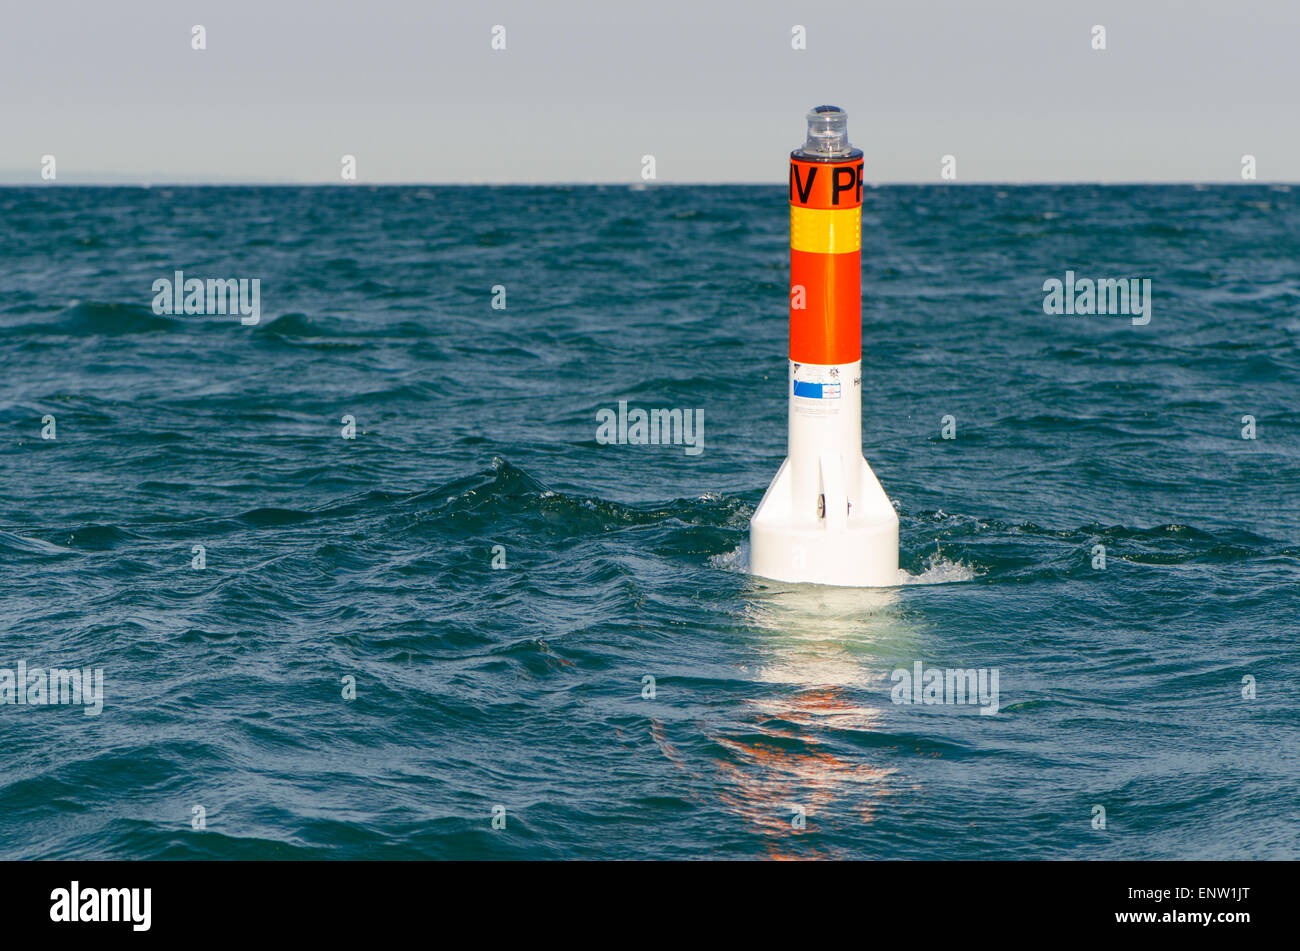 private navigation buoy - Stock Image